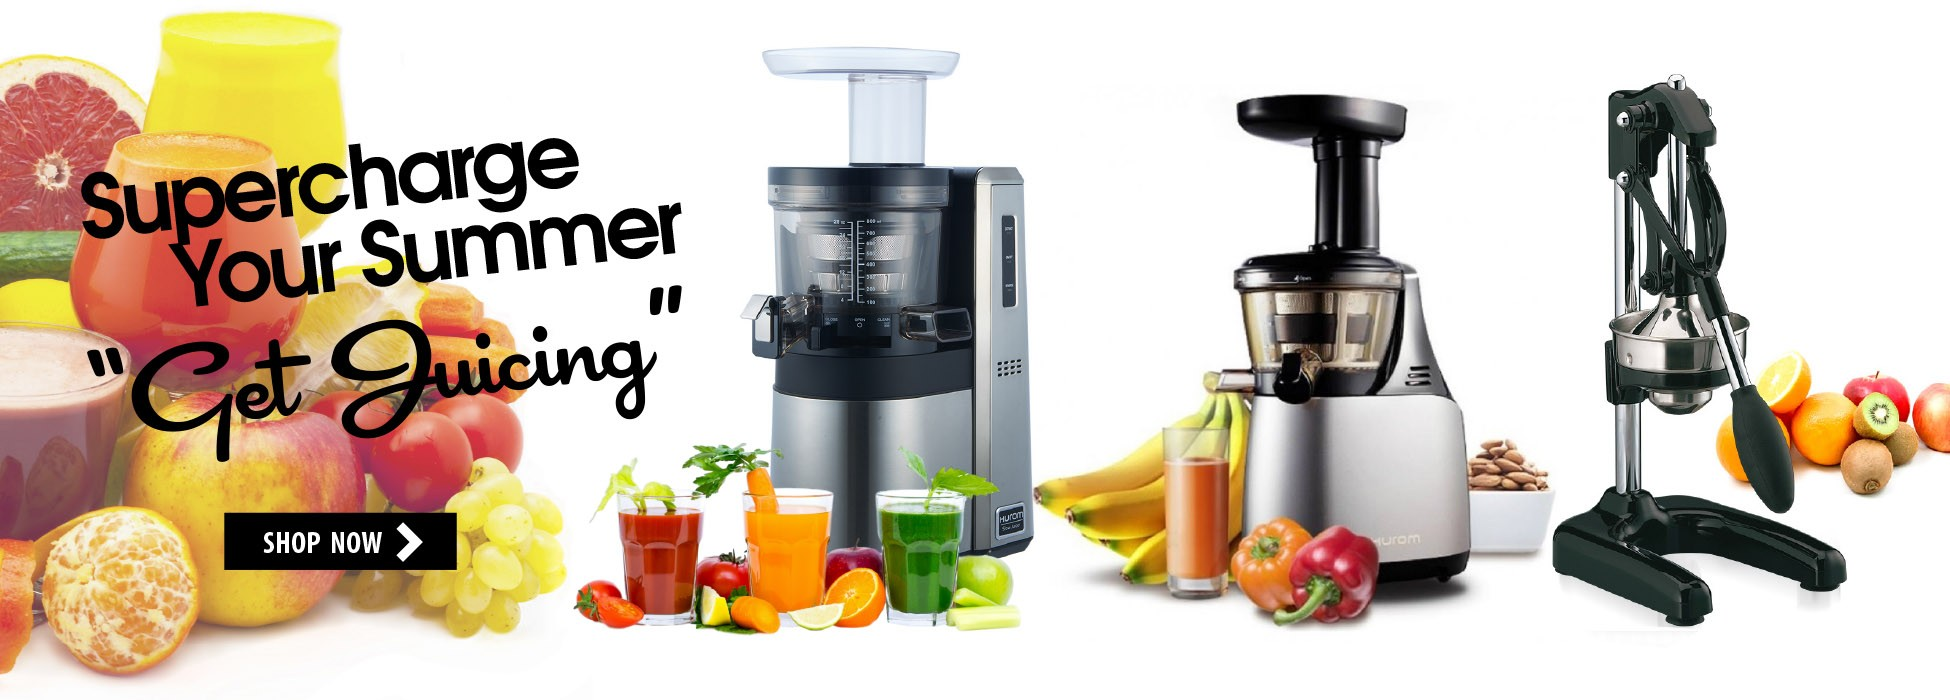 "Supercharge Your Summer ""Get Juicing"""